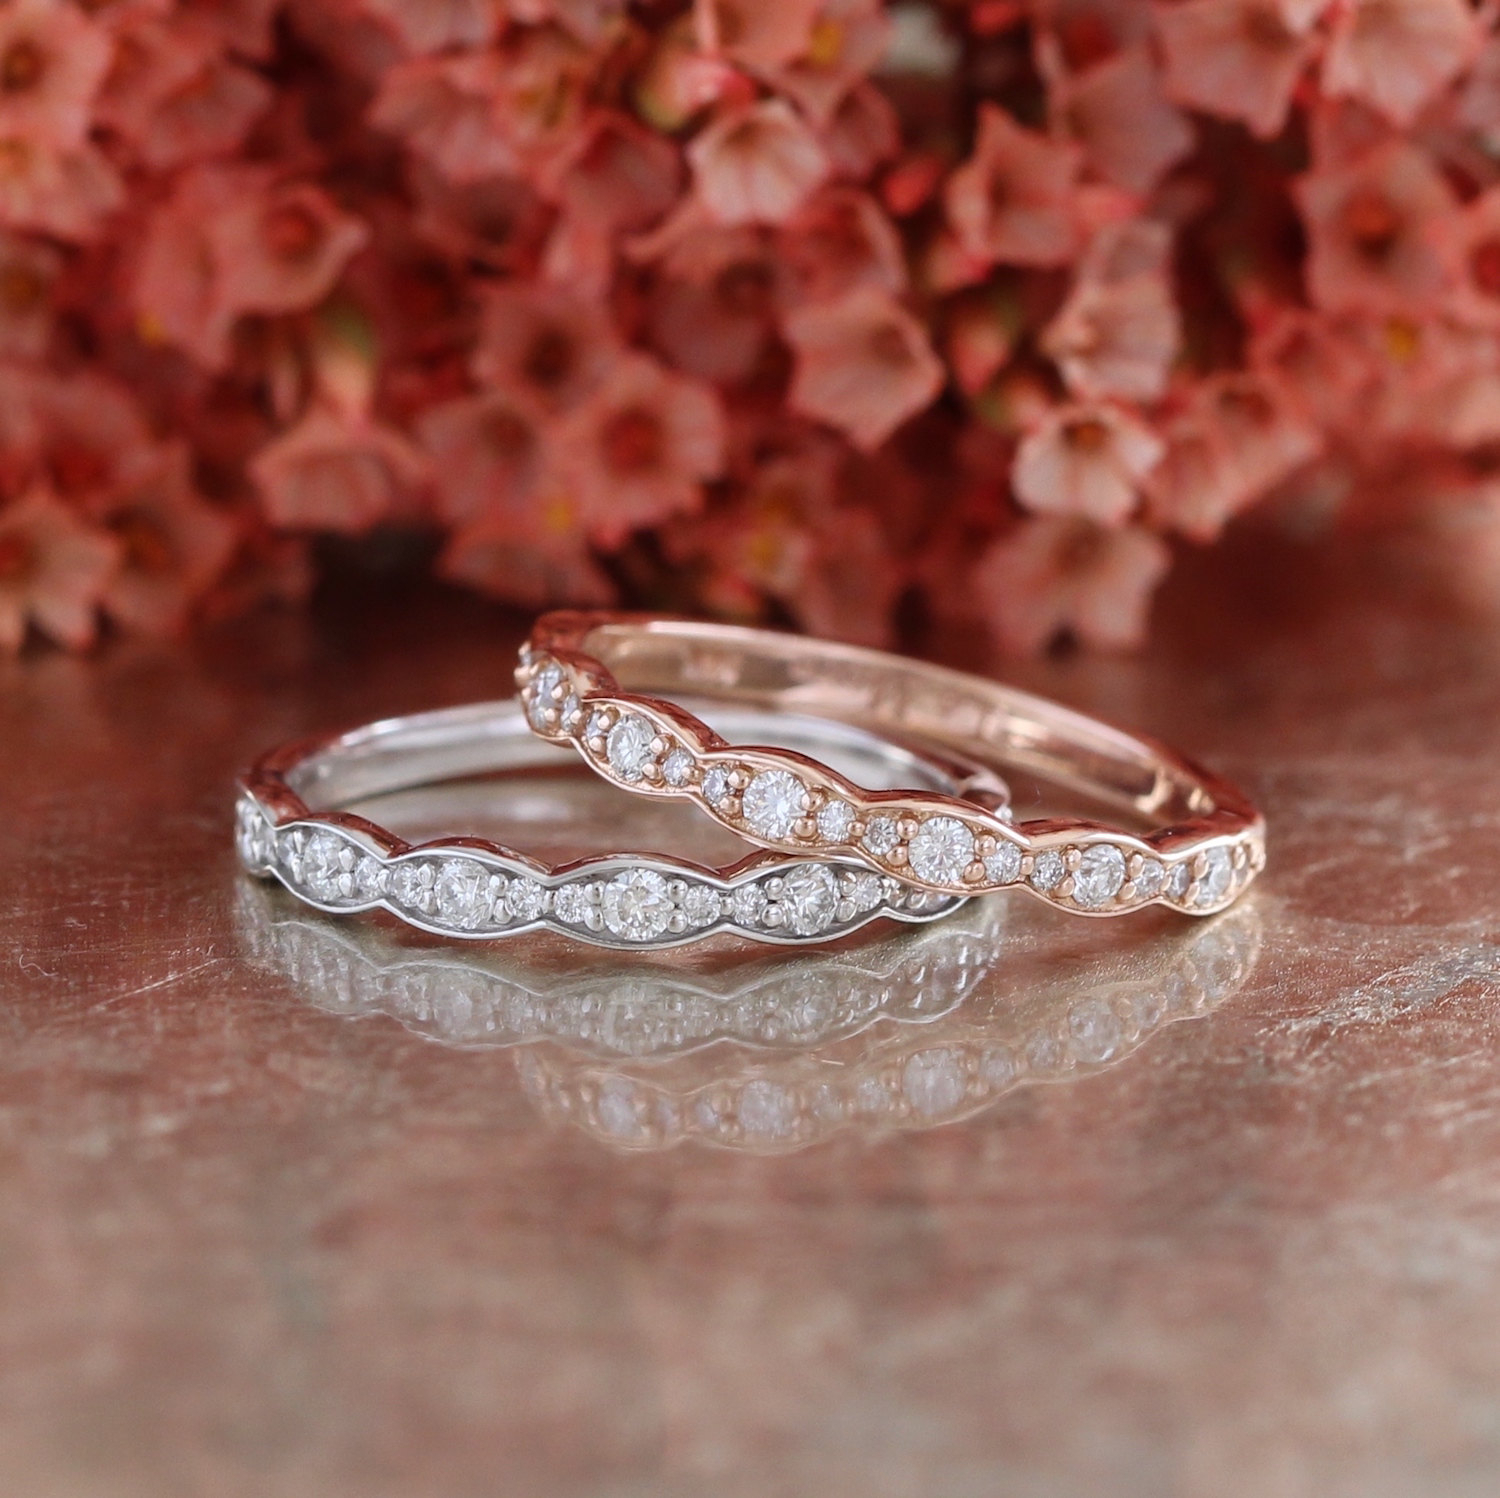 Matching Scalloped Diamond Wedding Ring Vintage Inspired Diamond Anniversary Ring In 14k White, Yellow Or Rose Gold Half Eternity Band Pertaining To Most Current Diamond Vintage Style Anniversary Bands In Gold (View 2 of 25)